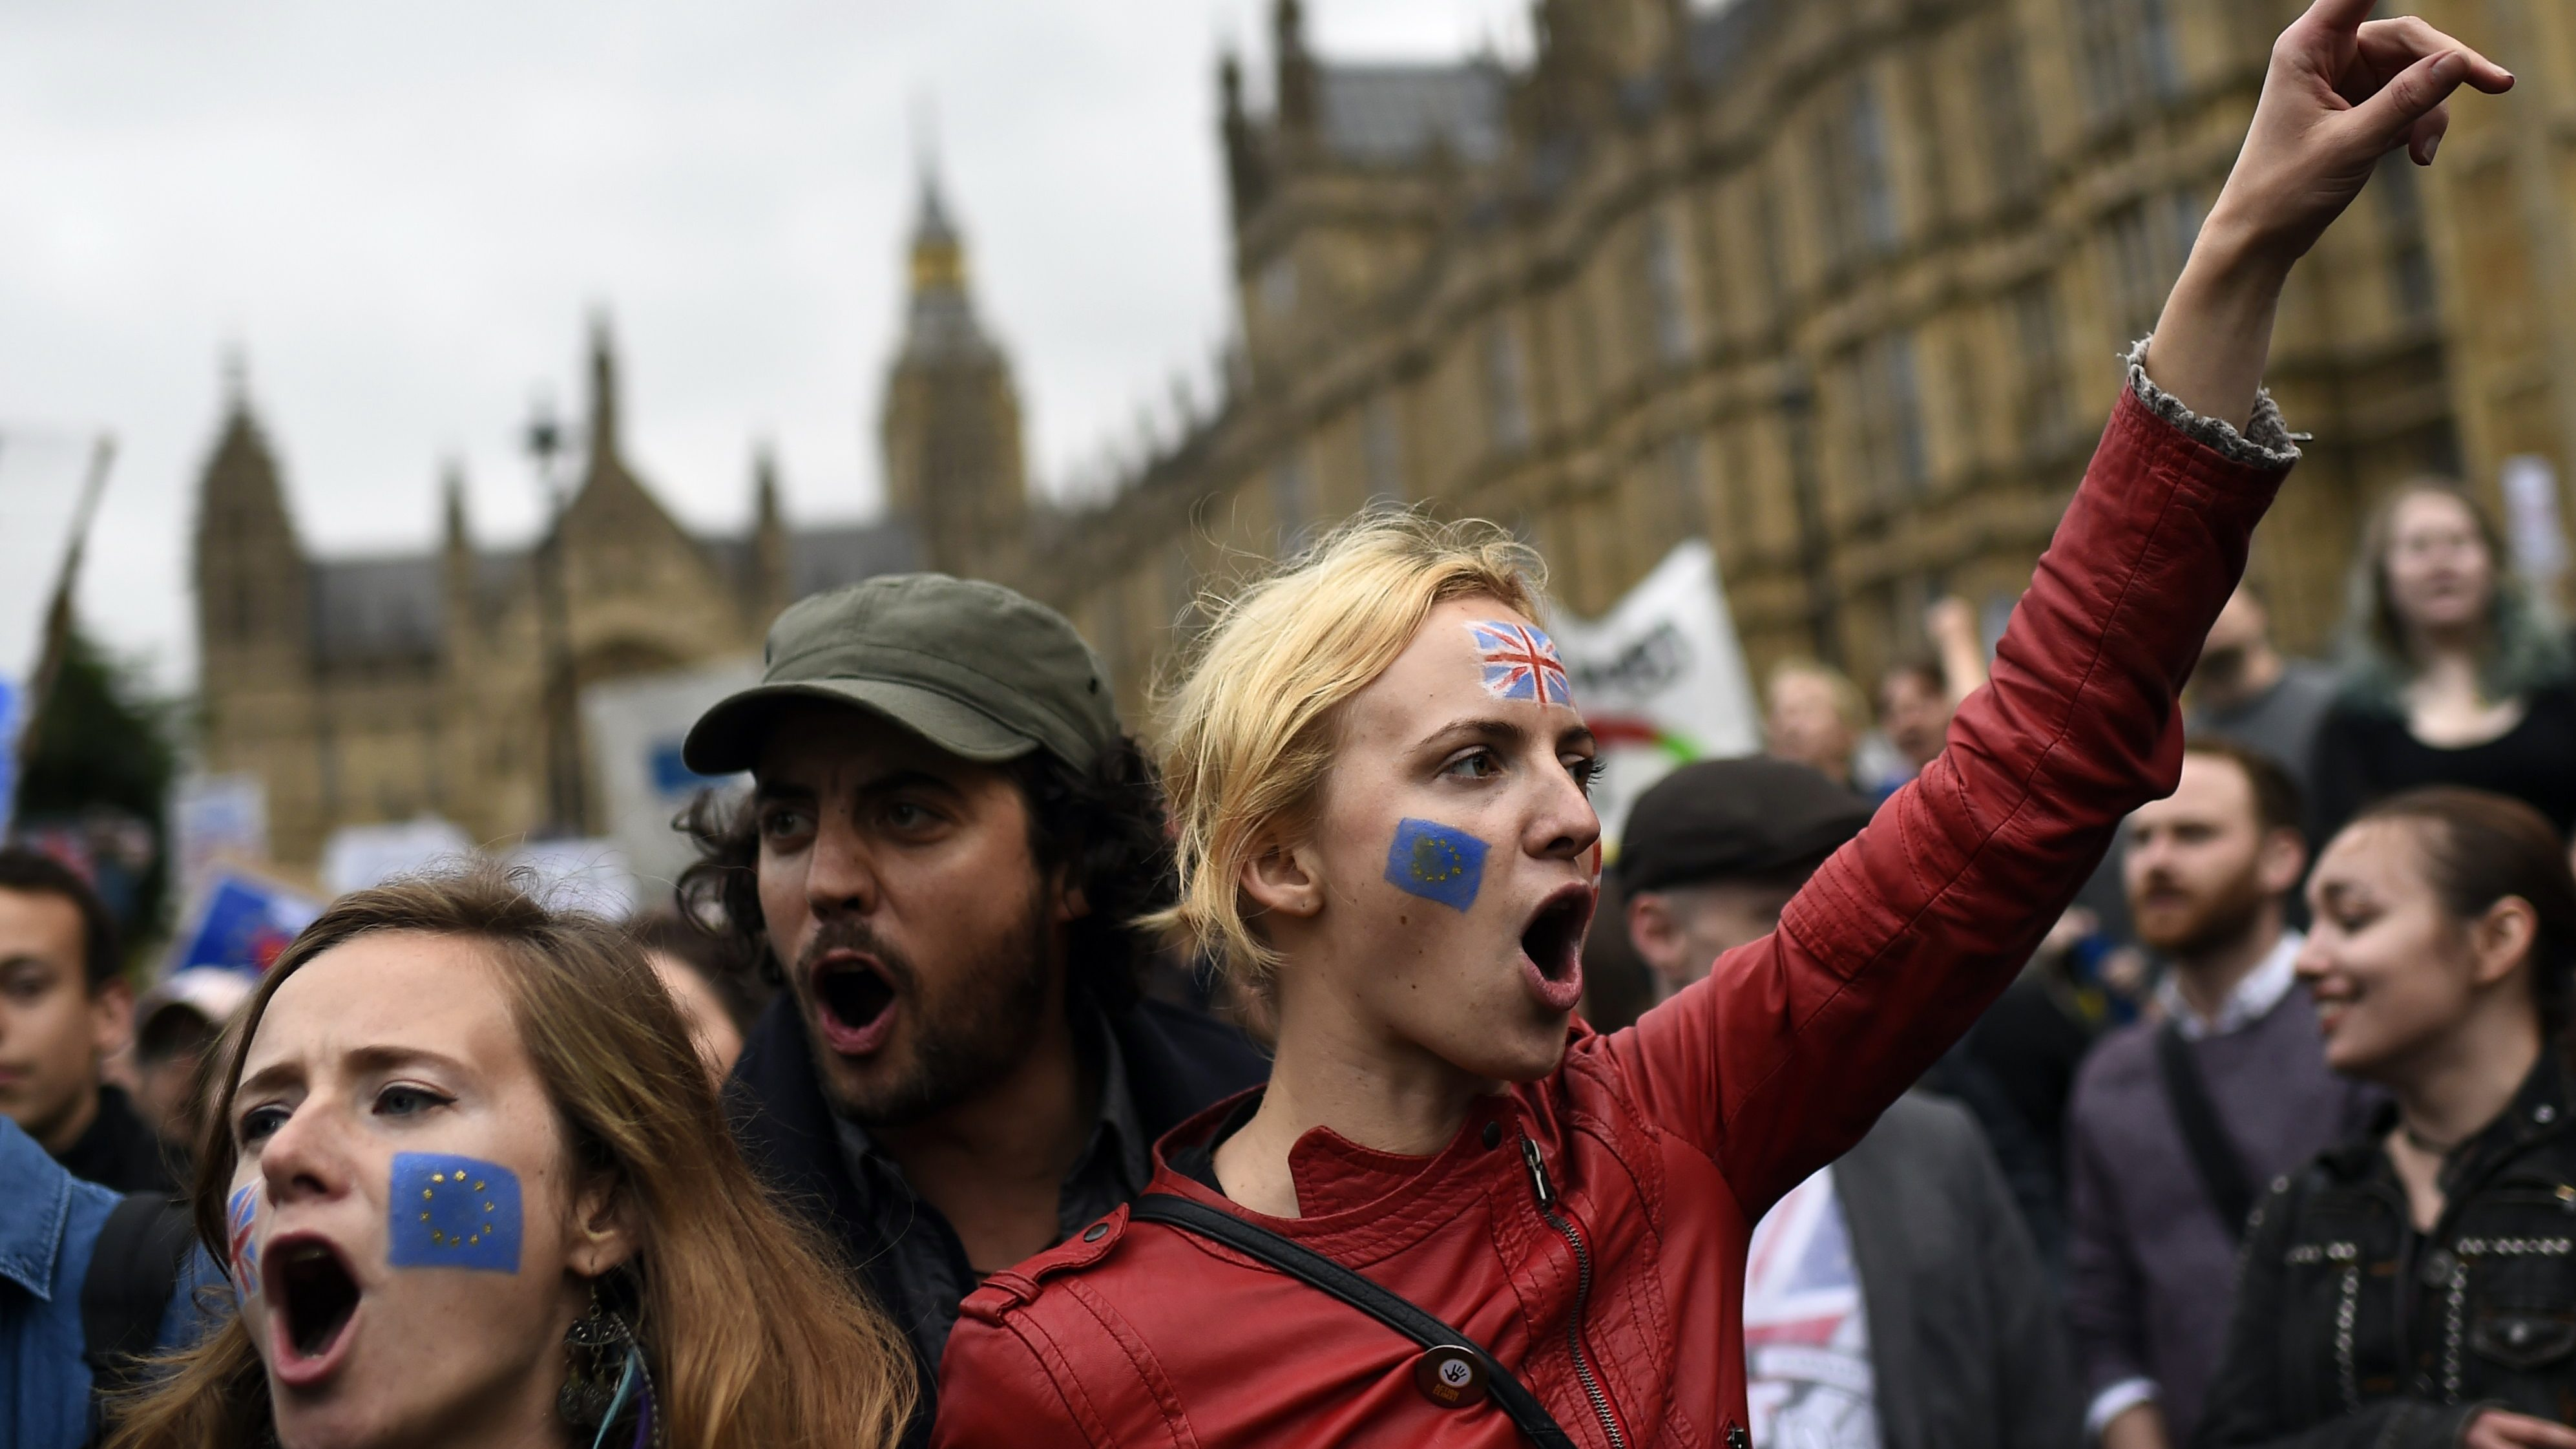 Demonstrators shout outside the Houses of Parliament during a protest aimed at showing London's solidarity with the European Union following the recent EU referendum, in central London